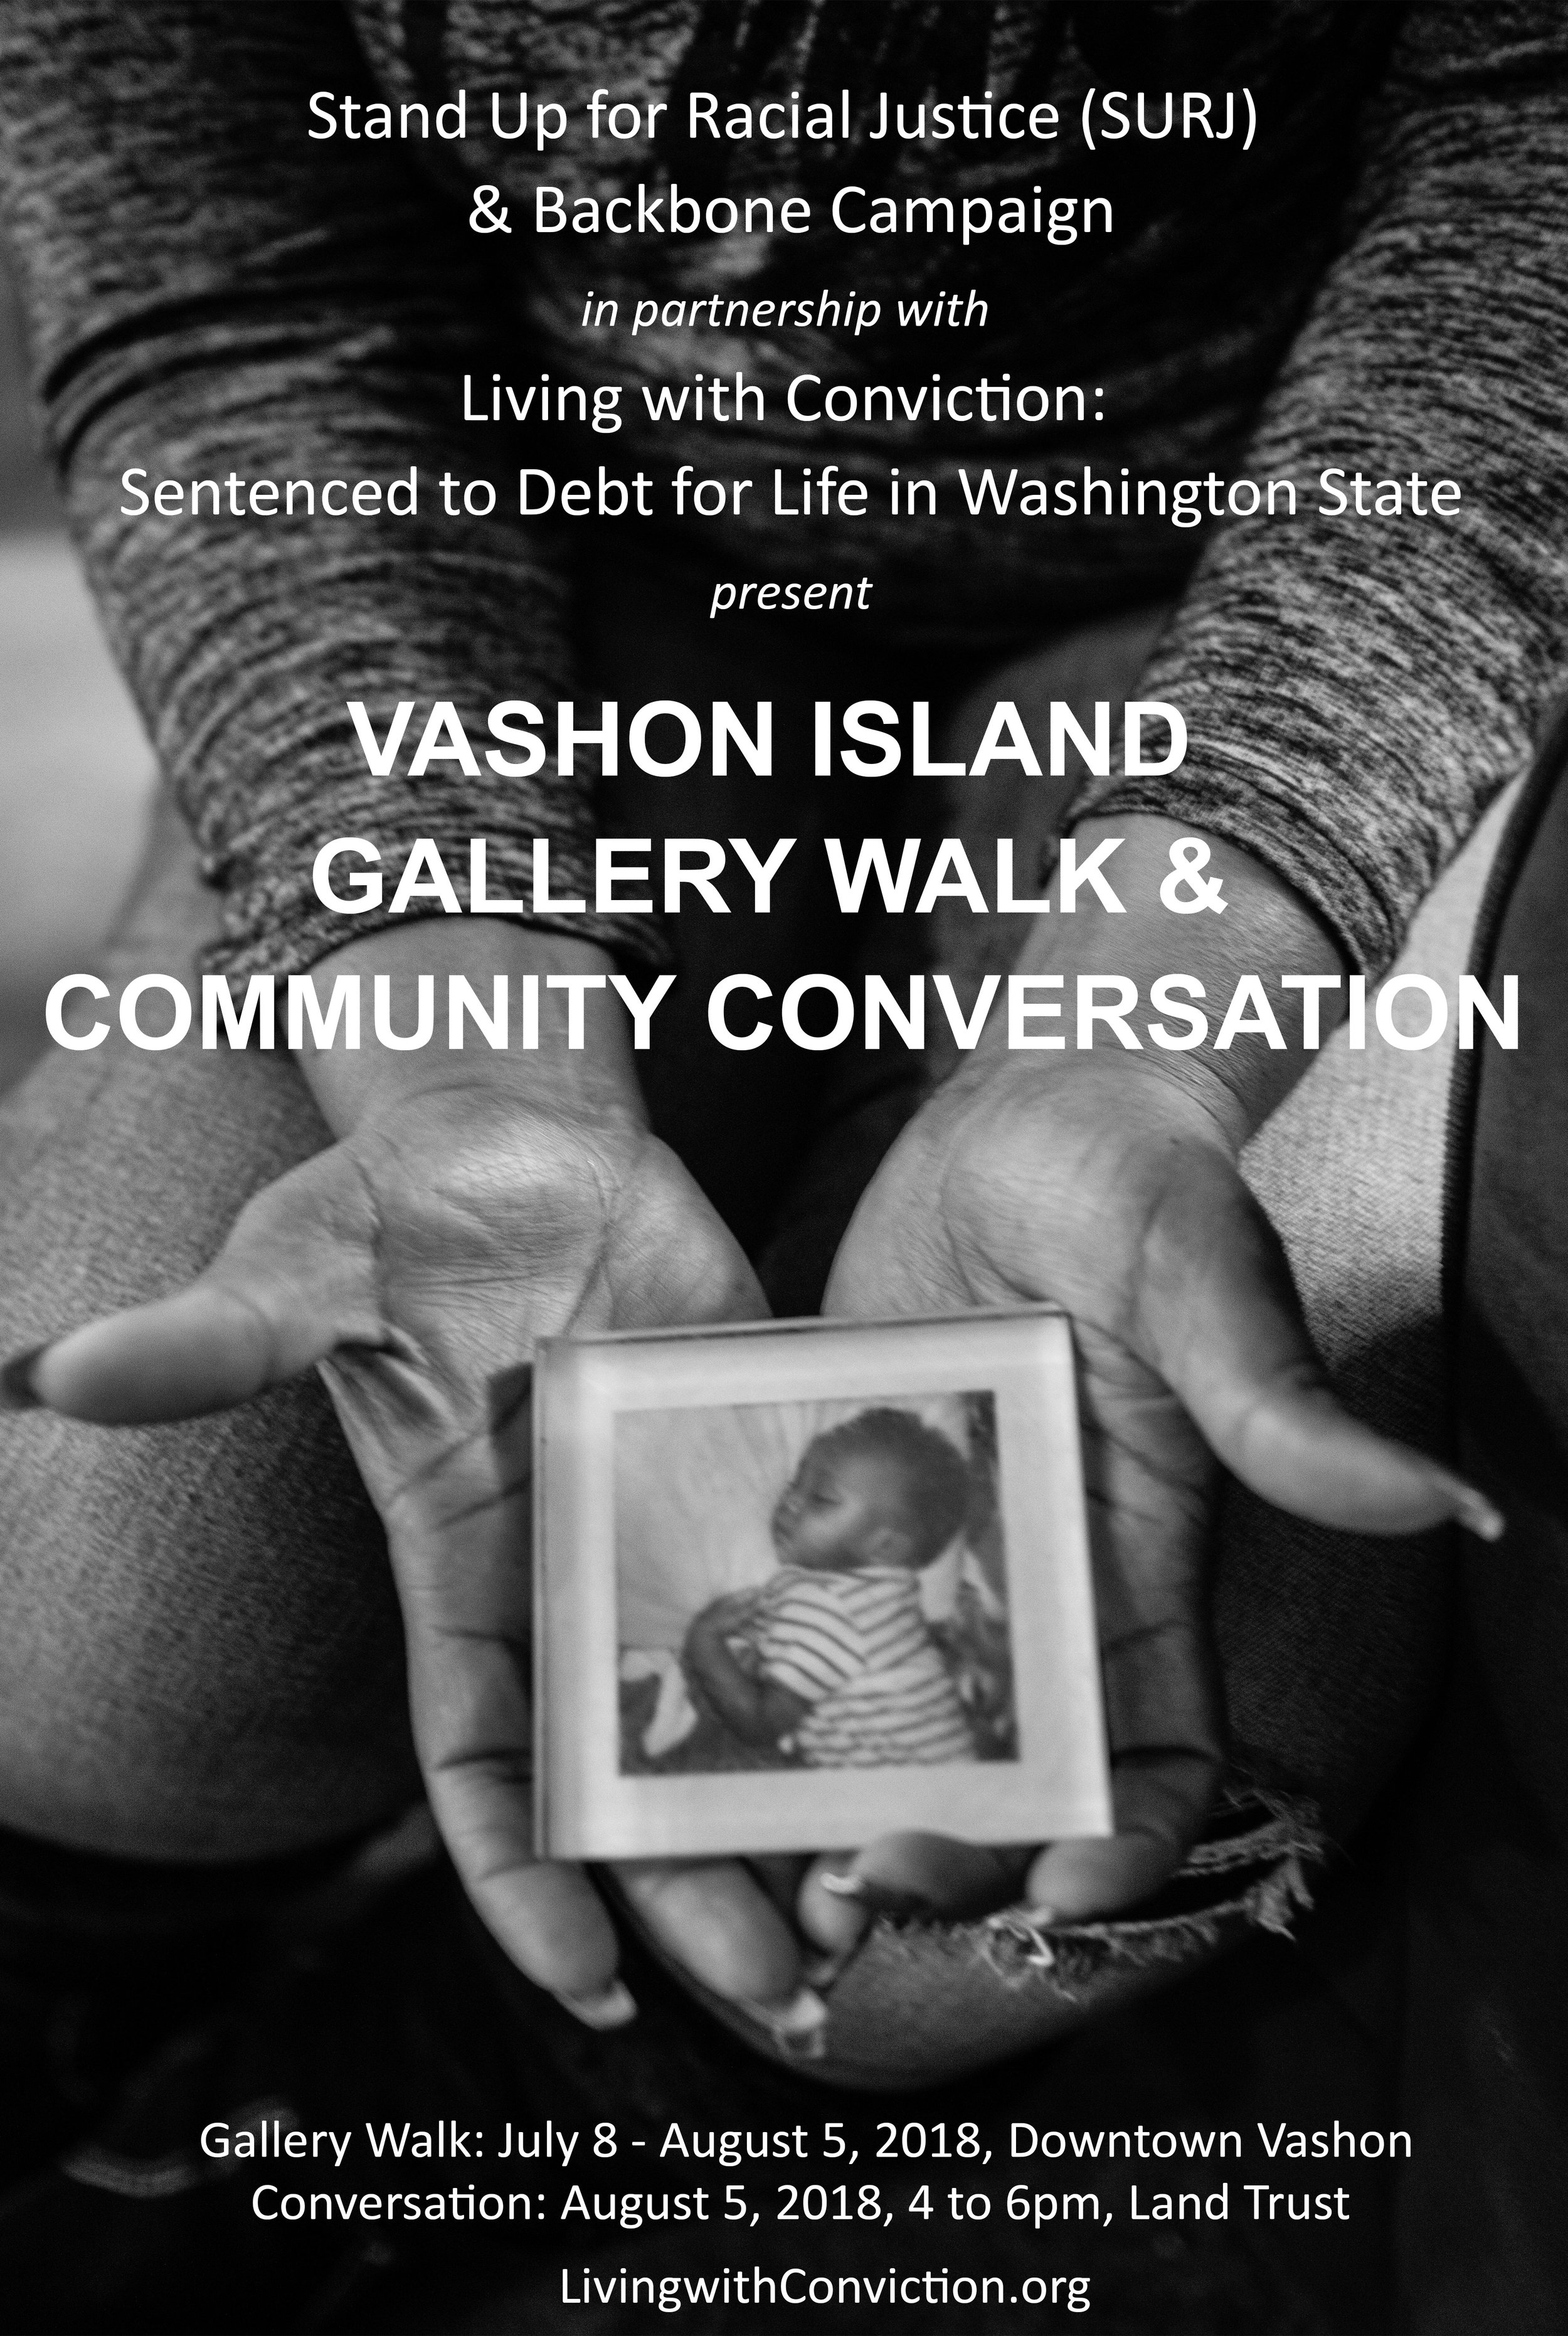 LivingwithConviction_Vashon-Poster_low-res.jpg